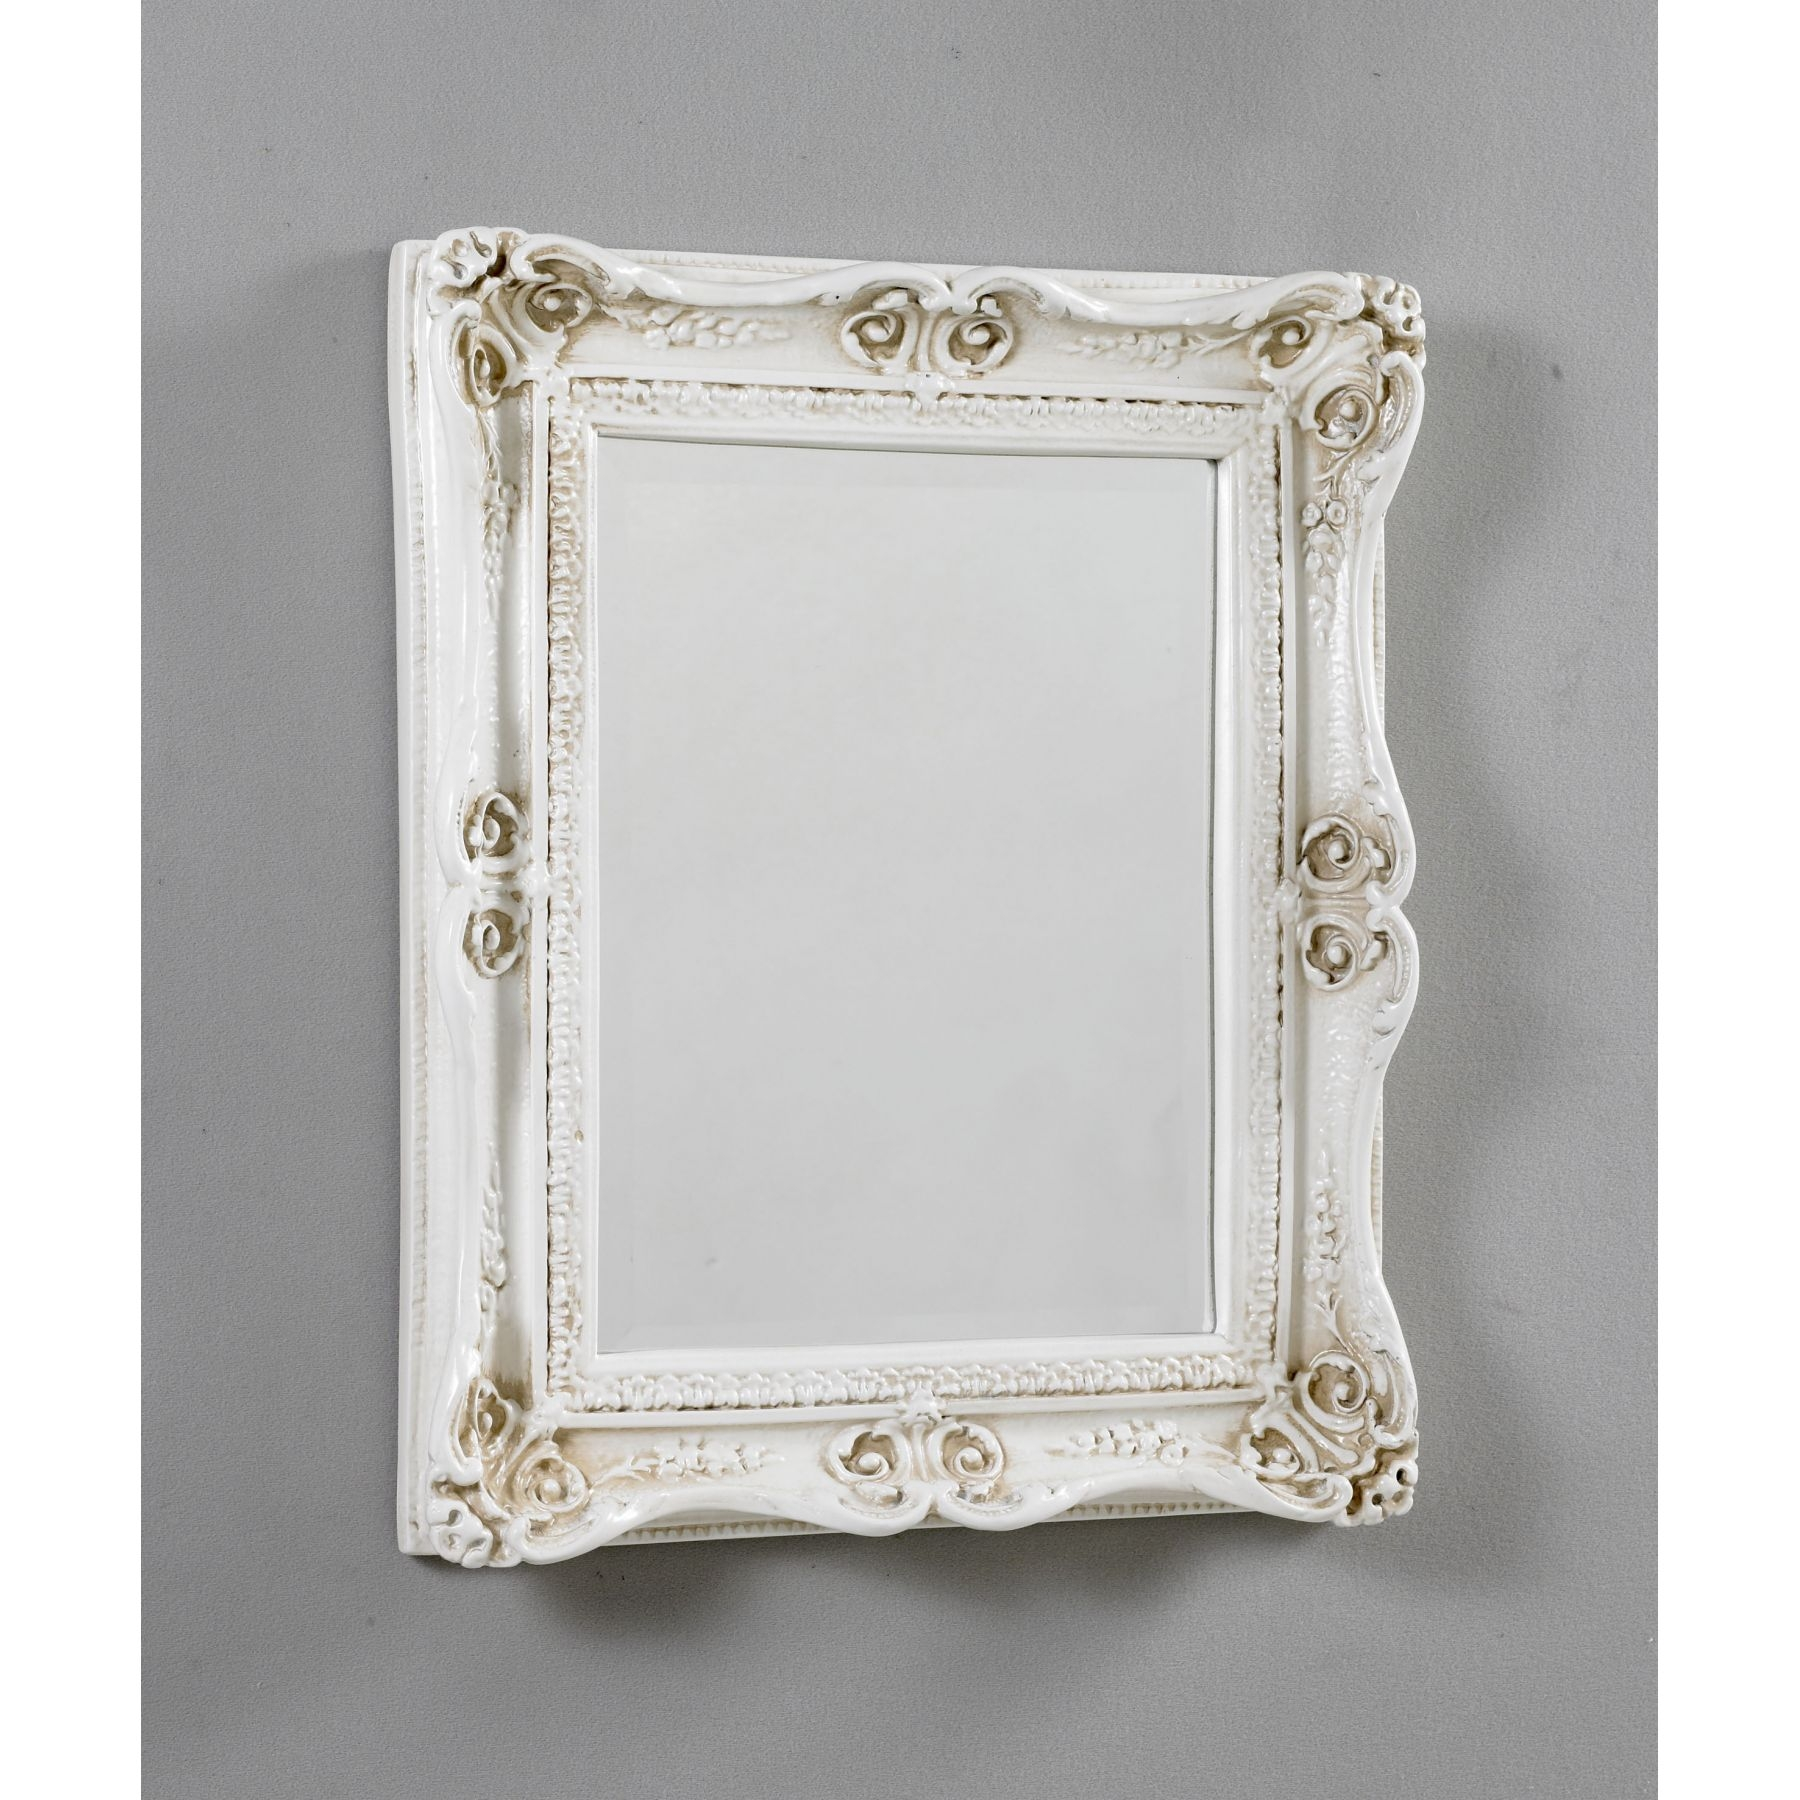 Home Decor Antique French Ivory Mirror 9 With Regard To Vintage French Mirrors (View 3 of 15)